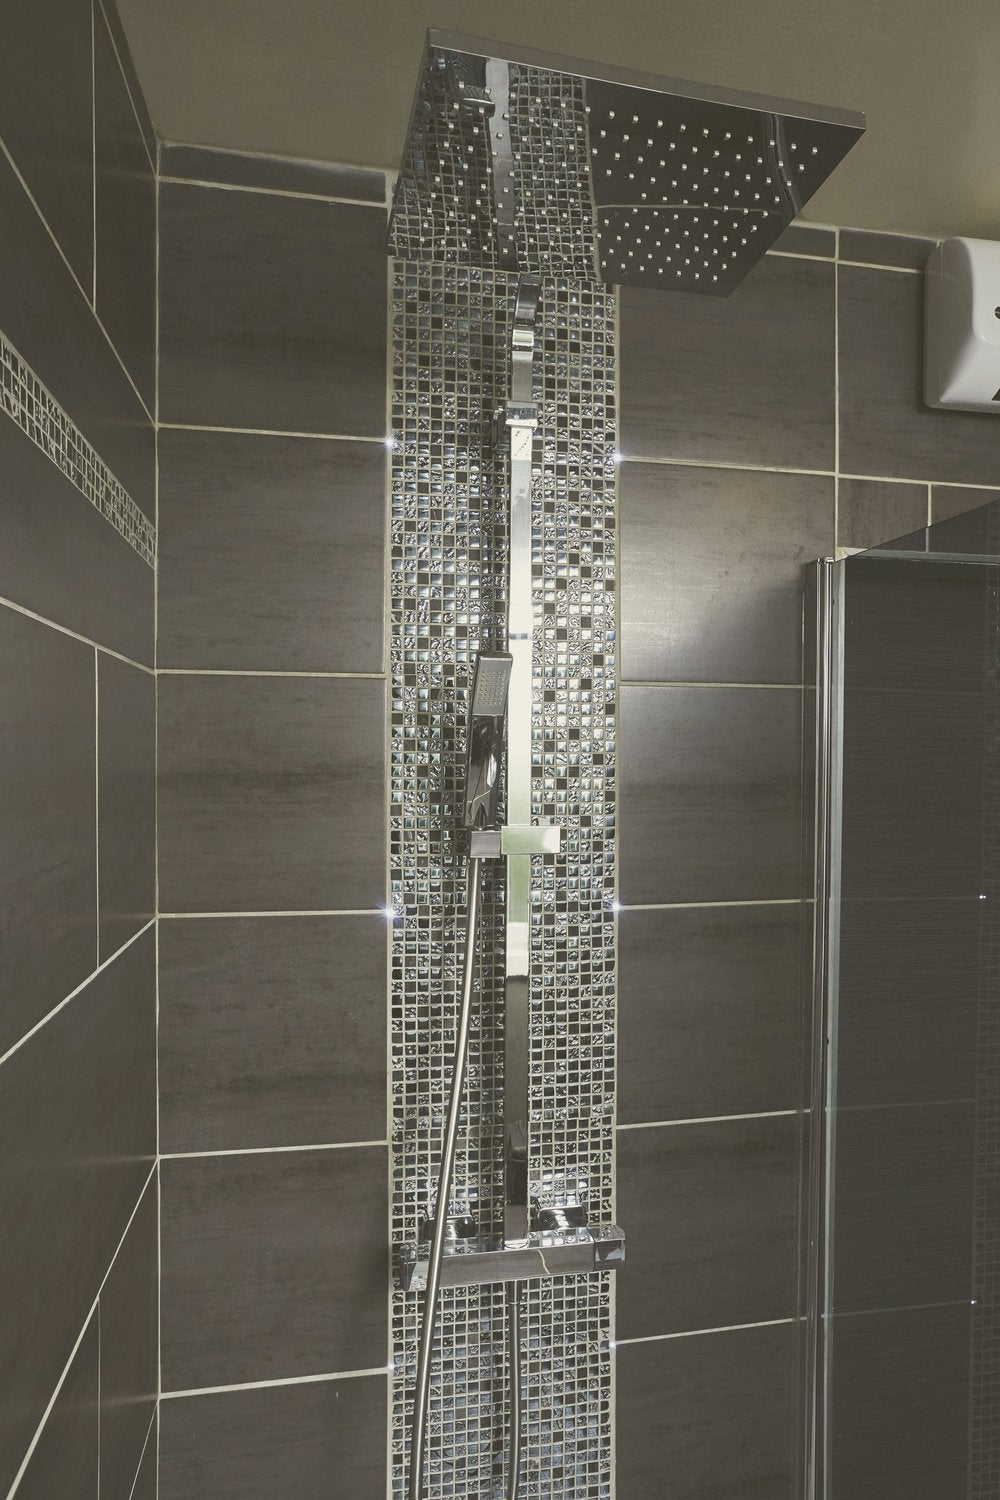 Carrelage design carrelage douche l italienne for Carrelage pour douche